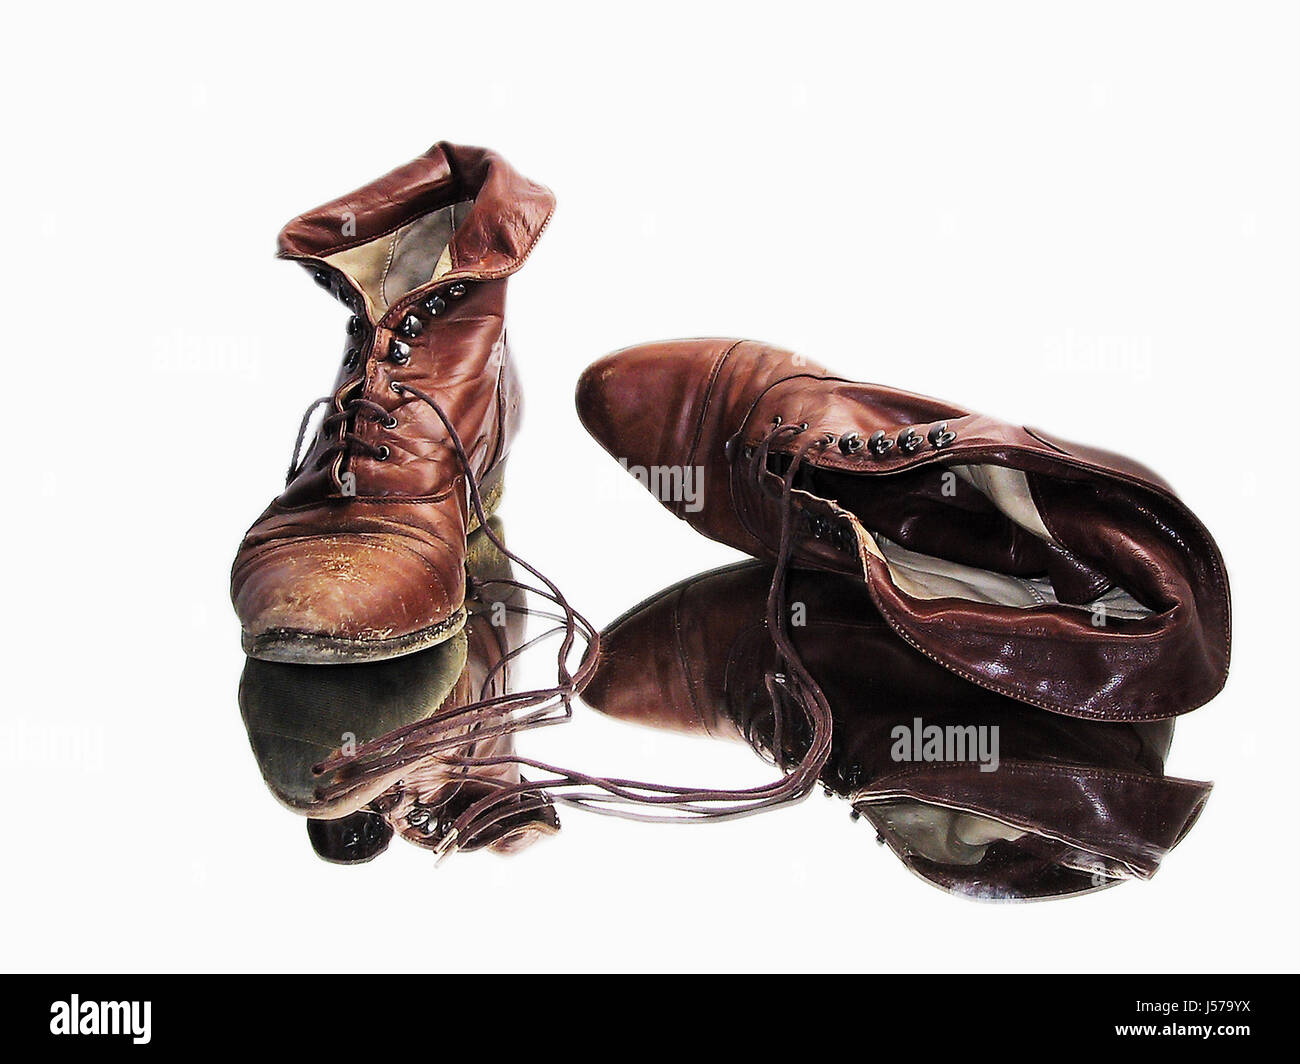 b8f8bc0be These Boots Are Made For Walking Stock Photos   These Boots Are Made ...